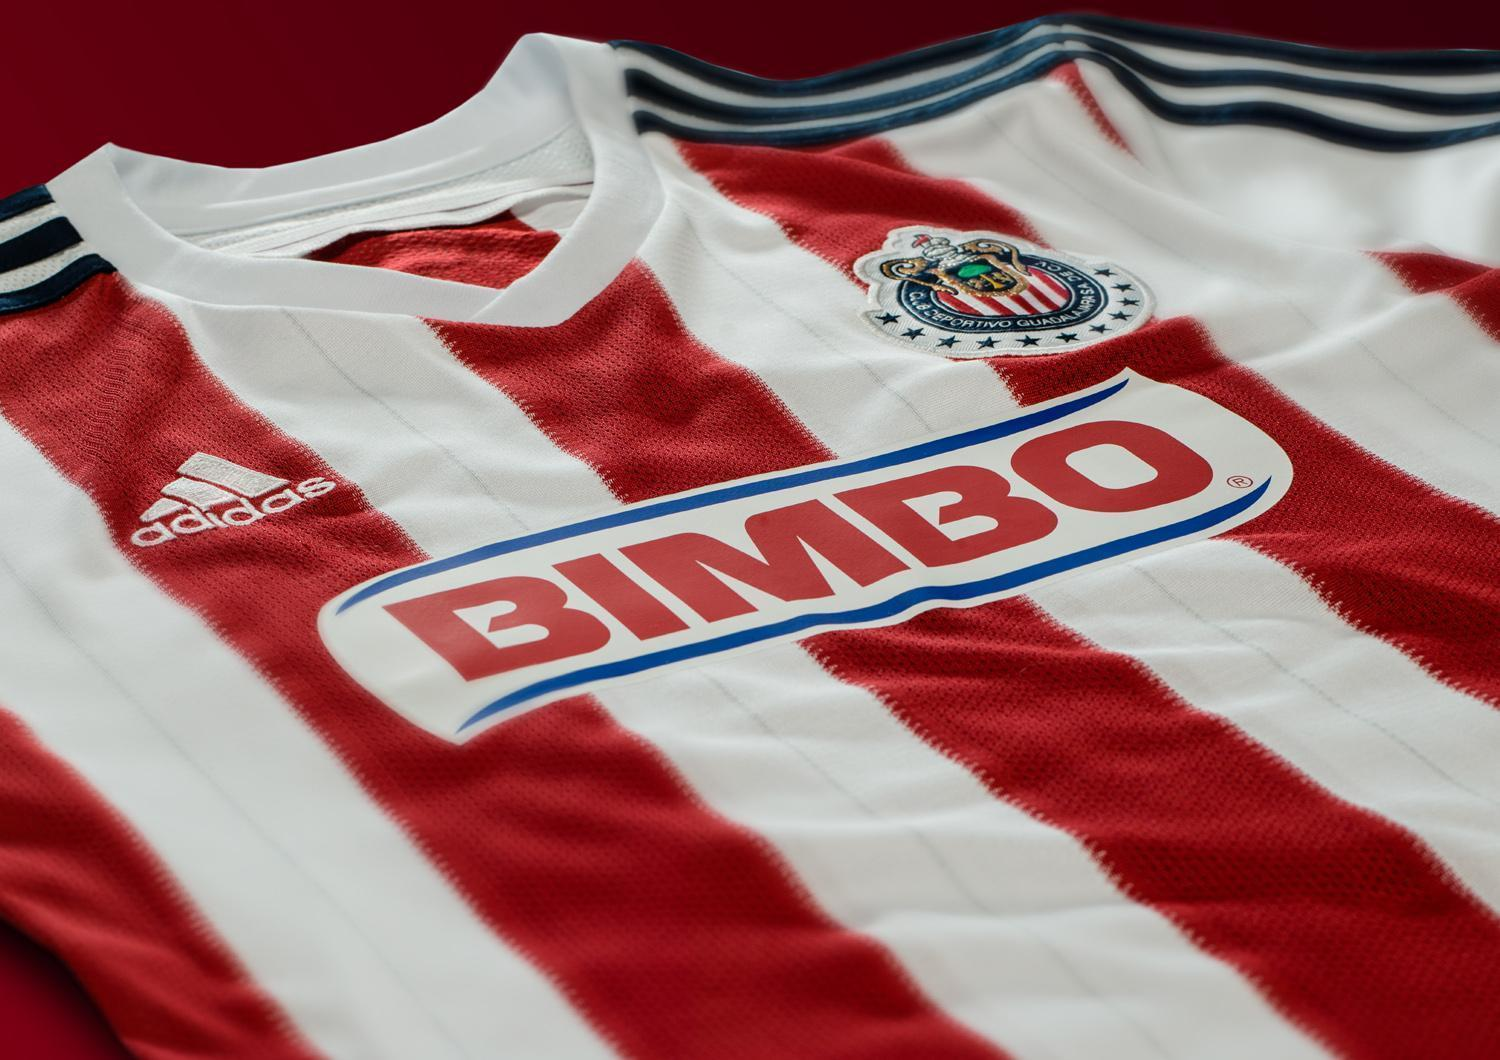 34120e600a4 Yükle (320x288)CLUB DEPORTIVO CHIVAS USA EMBROIDERED CLIMA COOL MLS SOCCER  JERSEYClub deportivo chivas USA embroidered clima cool MLS soccer jersey.